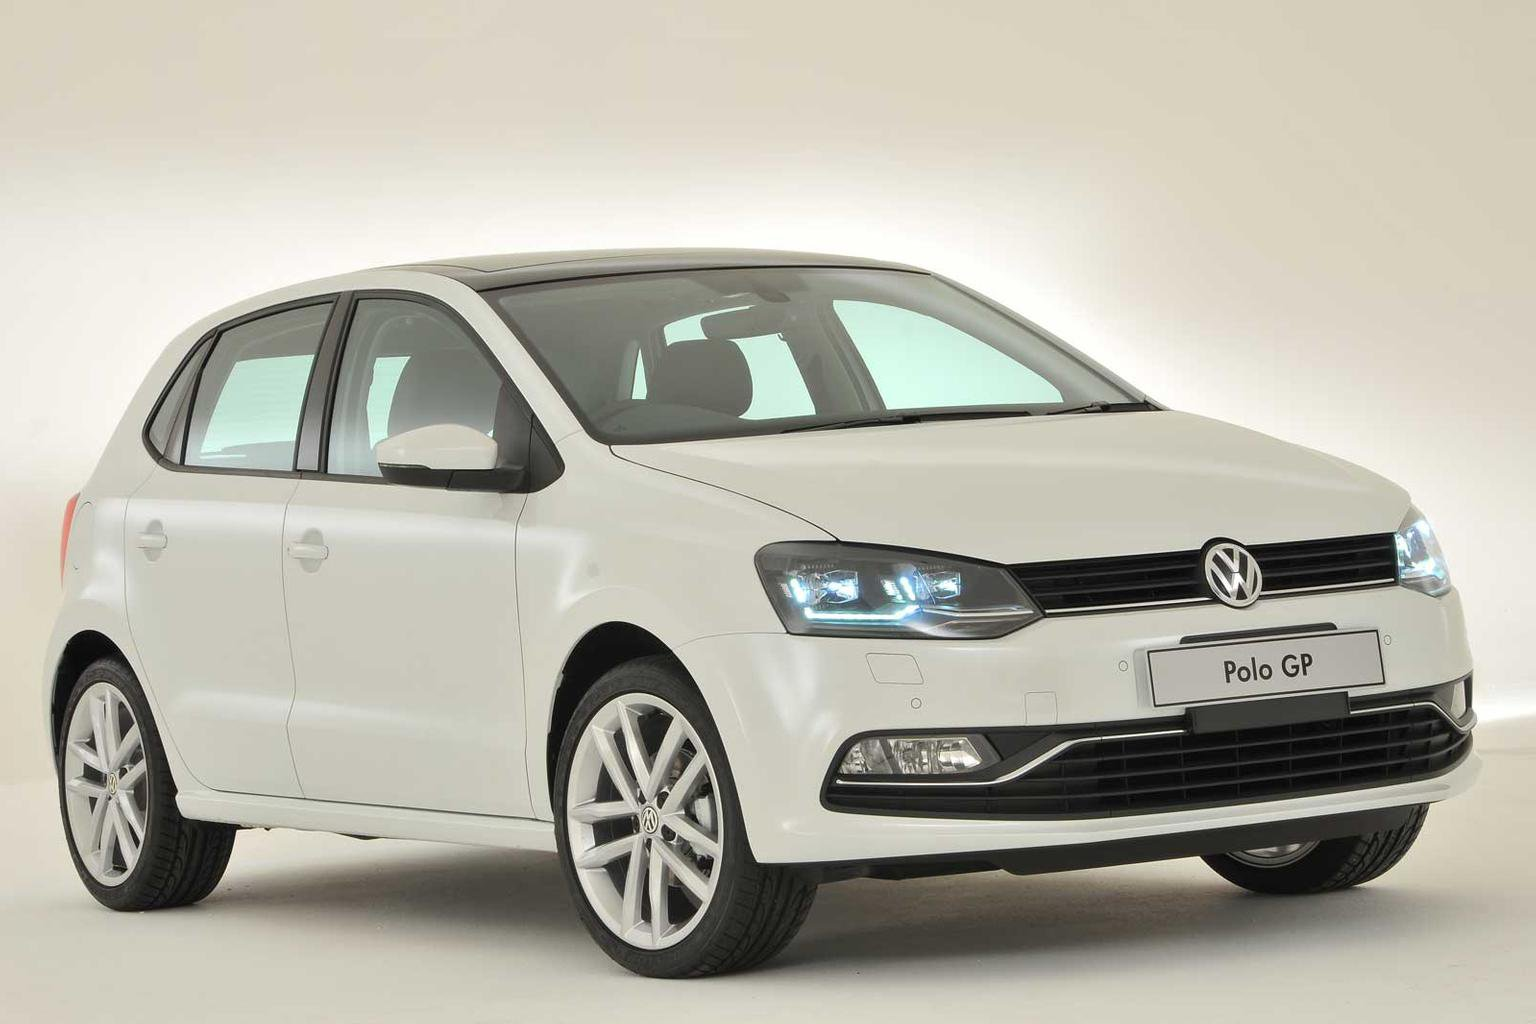 2014 Volkswagen Polo - rivals it has to beat